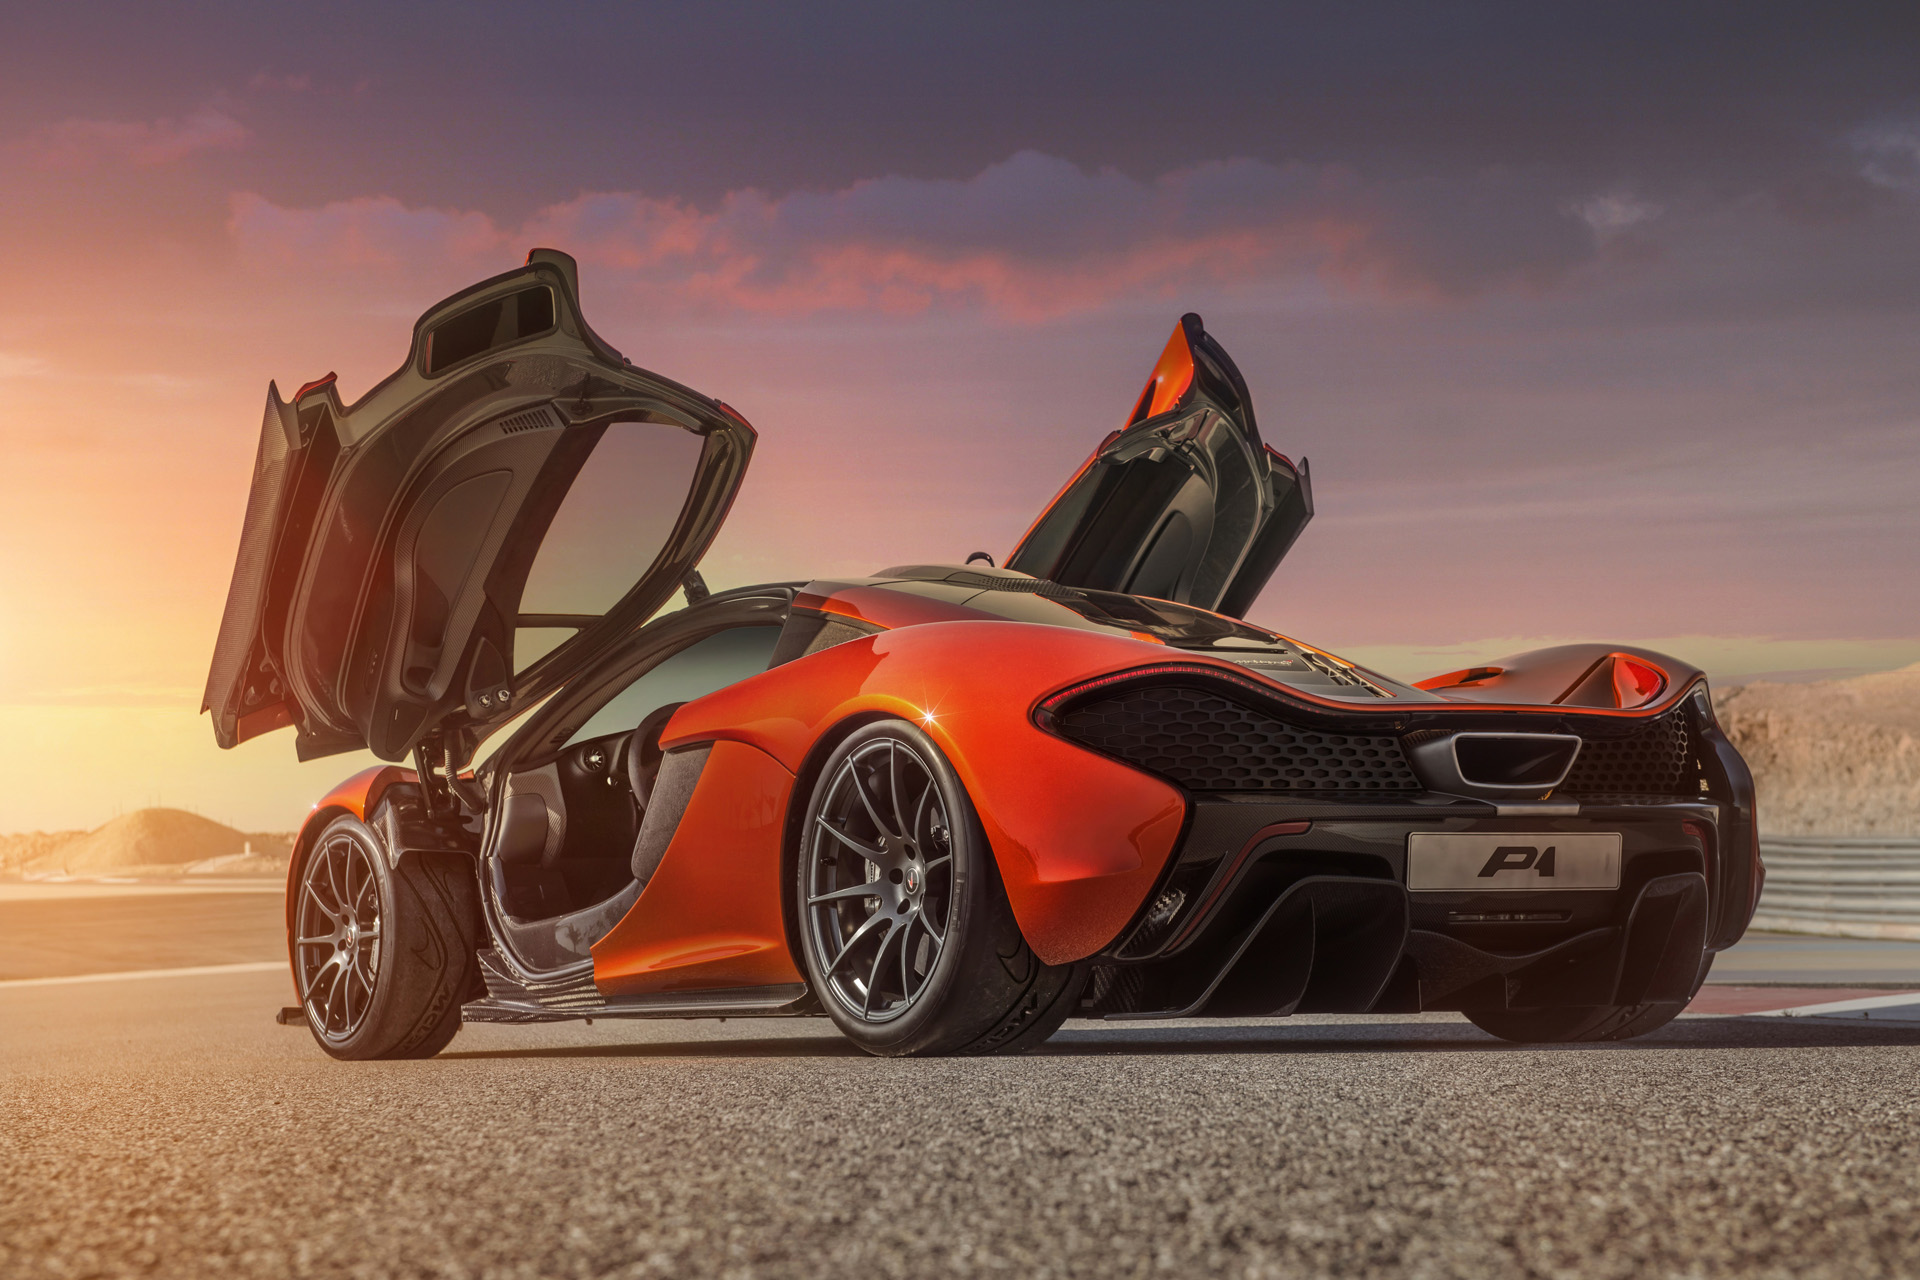 New Mclaren P1 High Res Images Released Forcegt Com